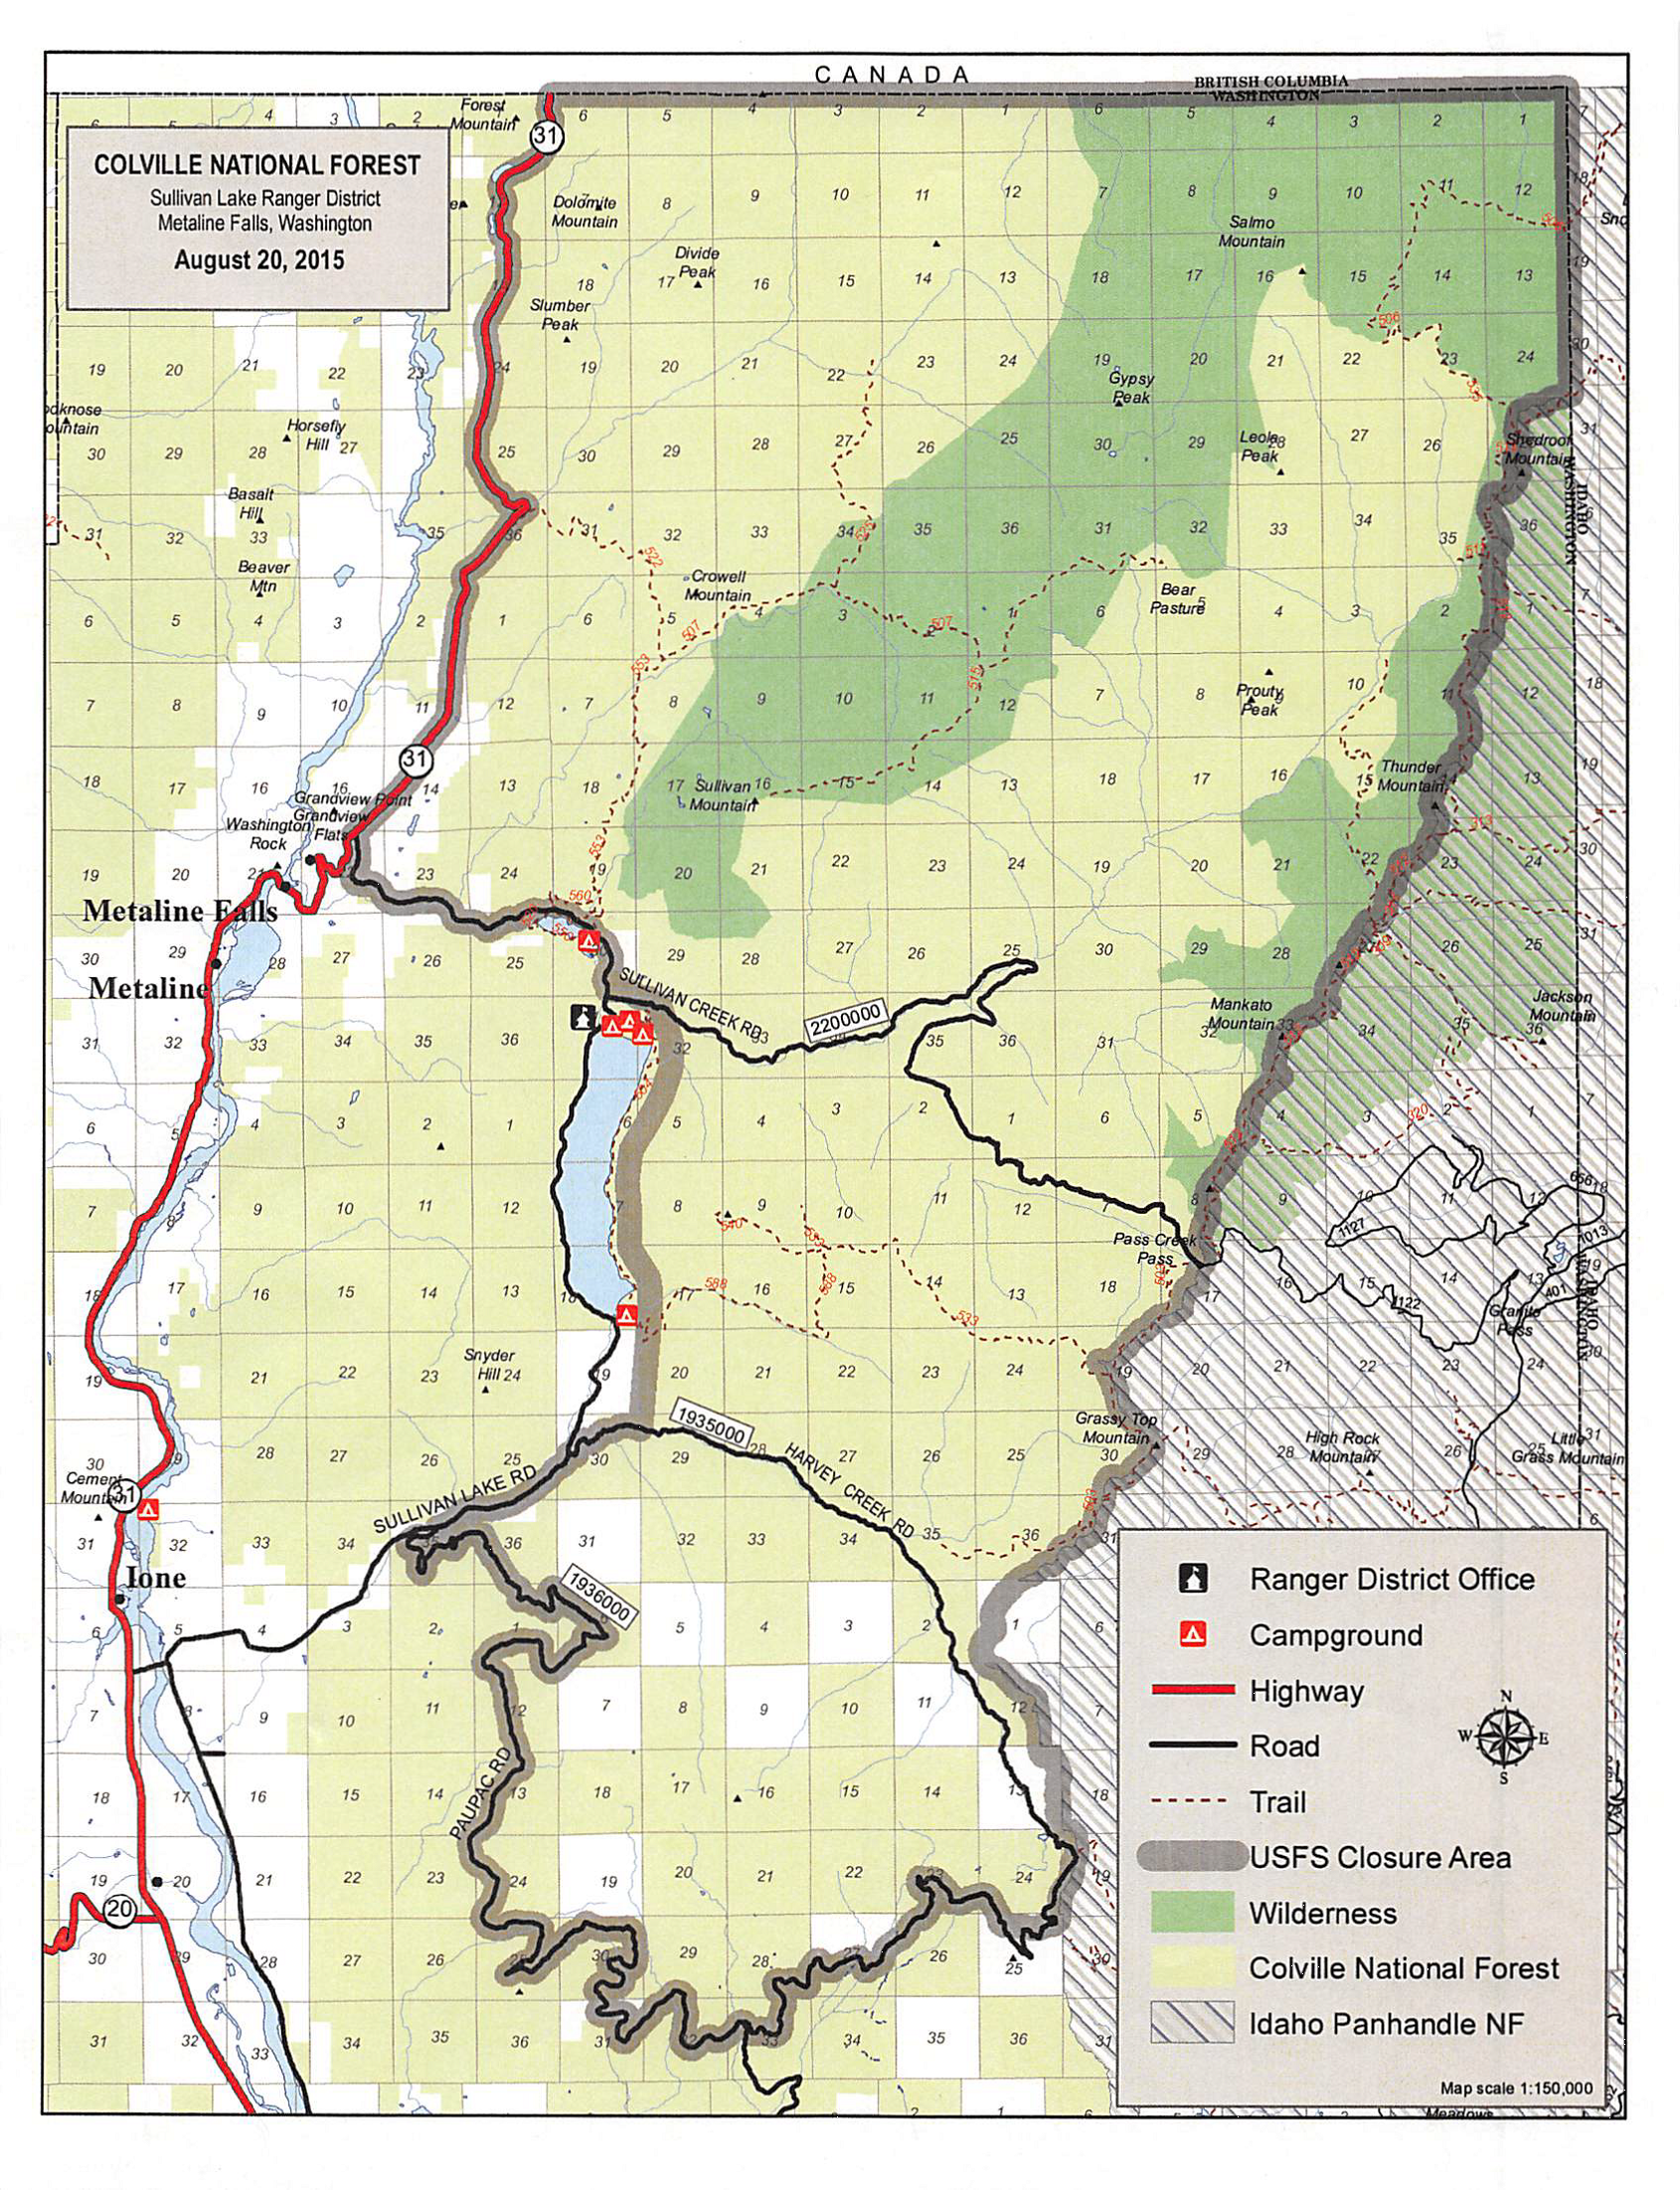 Fire Activity Causes Colville Forest To Close Huge Areas To Public - Map of us national forest